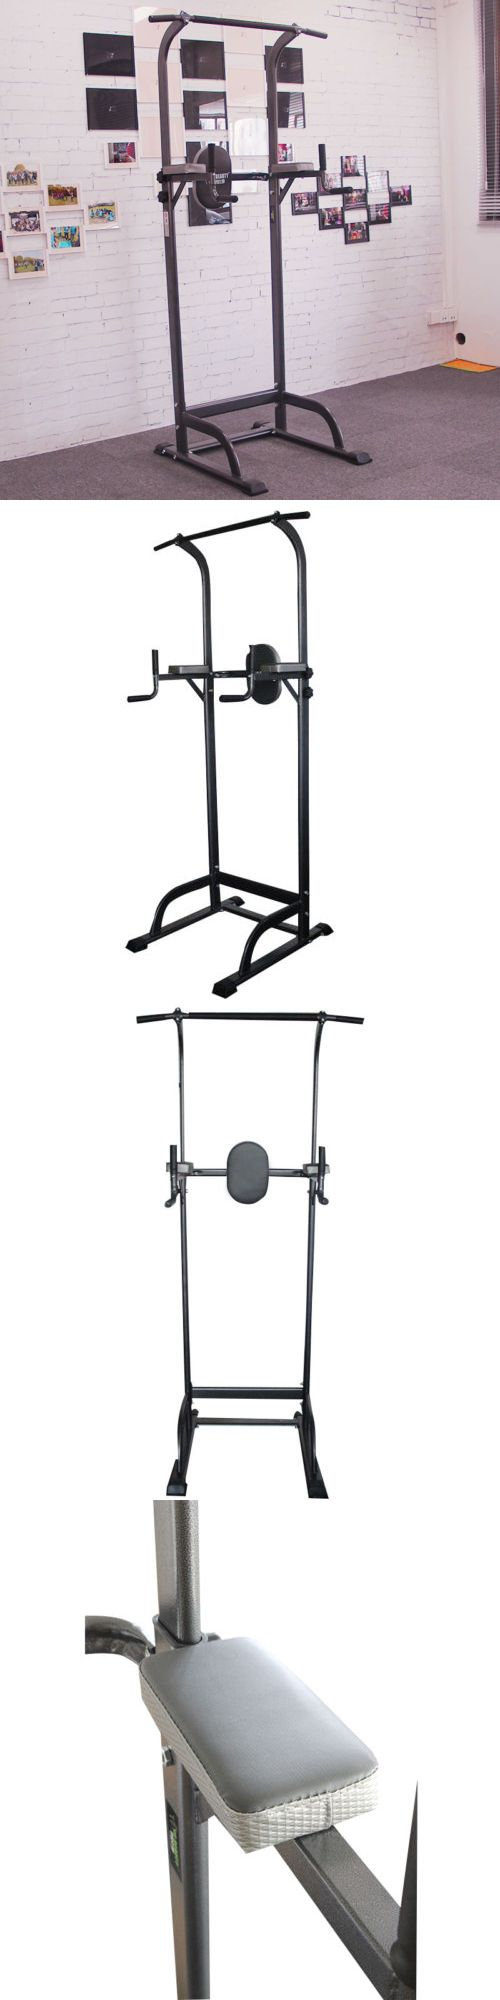 Pull Up Bars 179816: Heavy Duty Dip Station Power Tower Pull Push Chin Up Bar Home Gym Fitness Us -> BUY IT NOW ONLY: $99 on eBay!